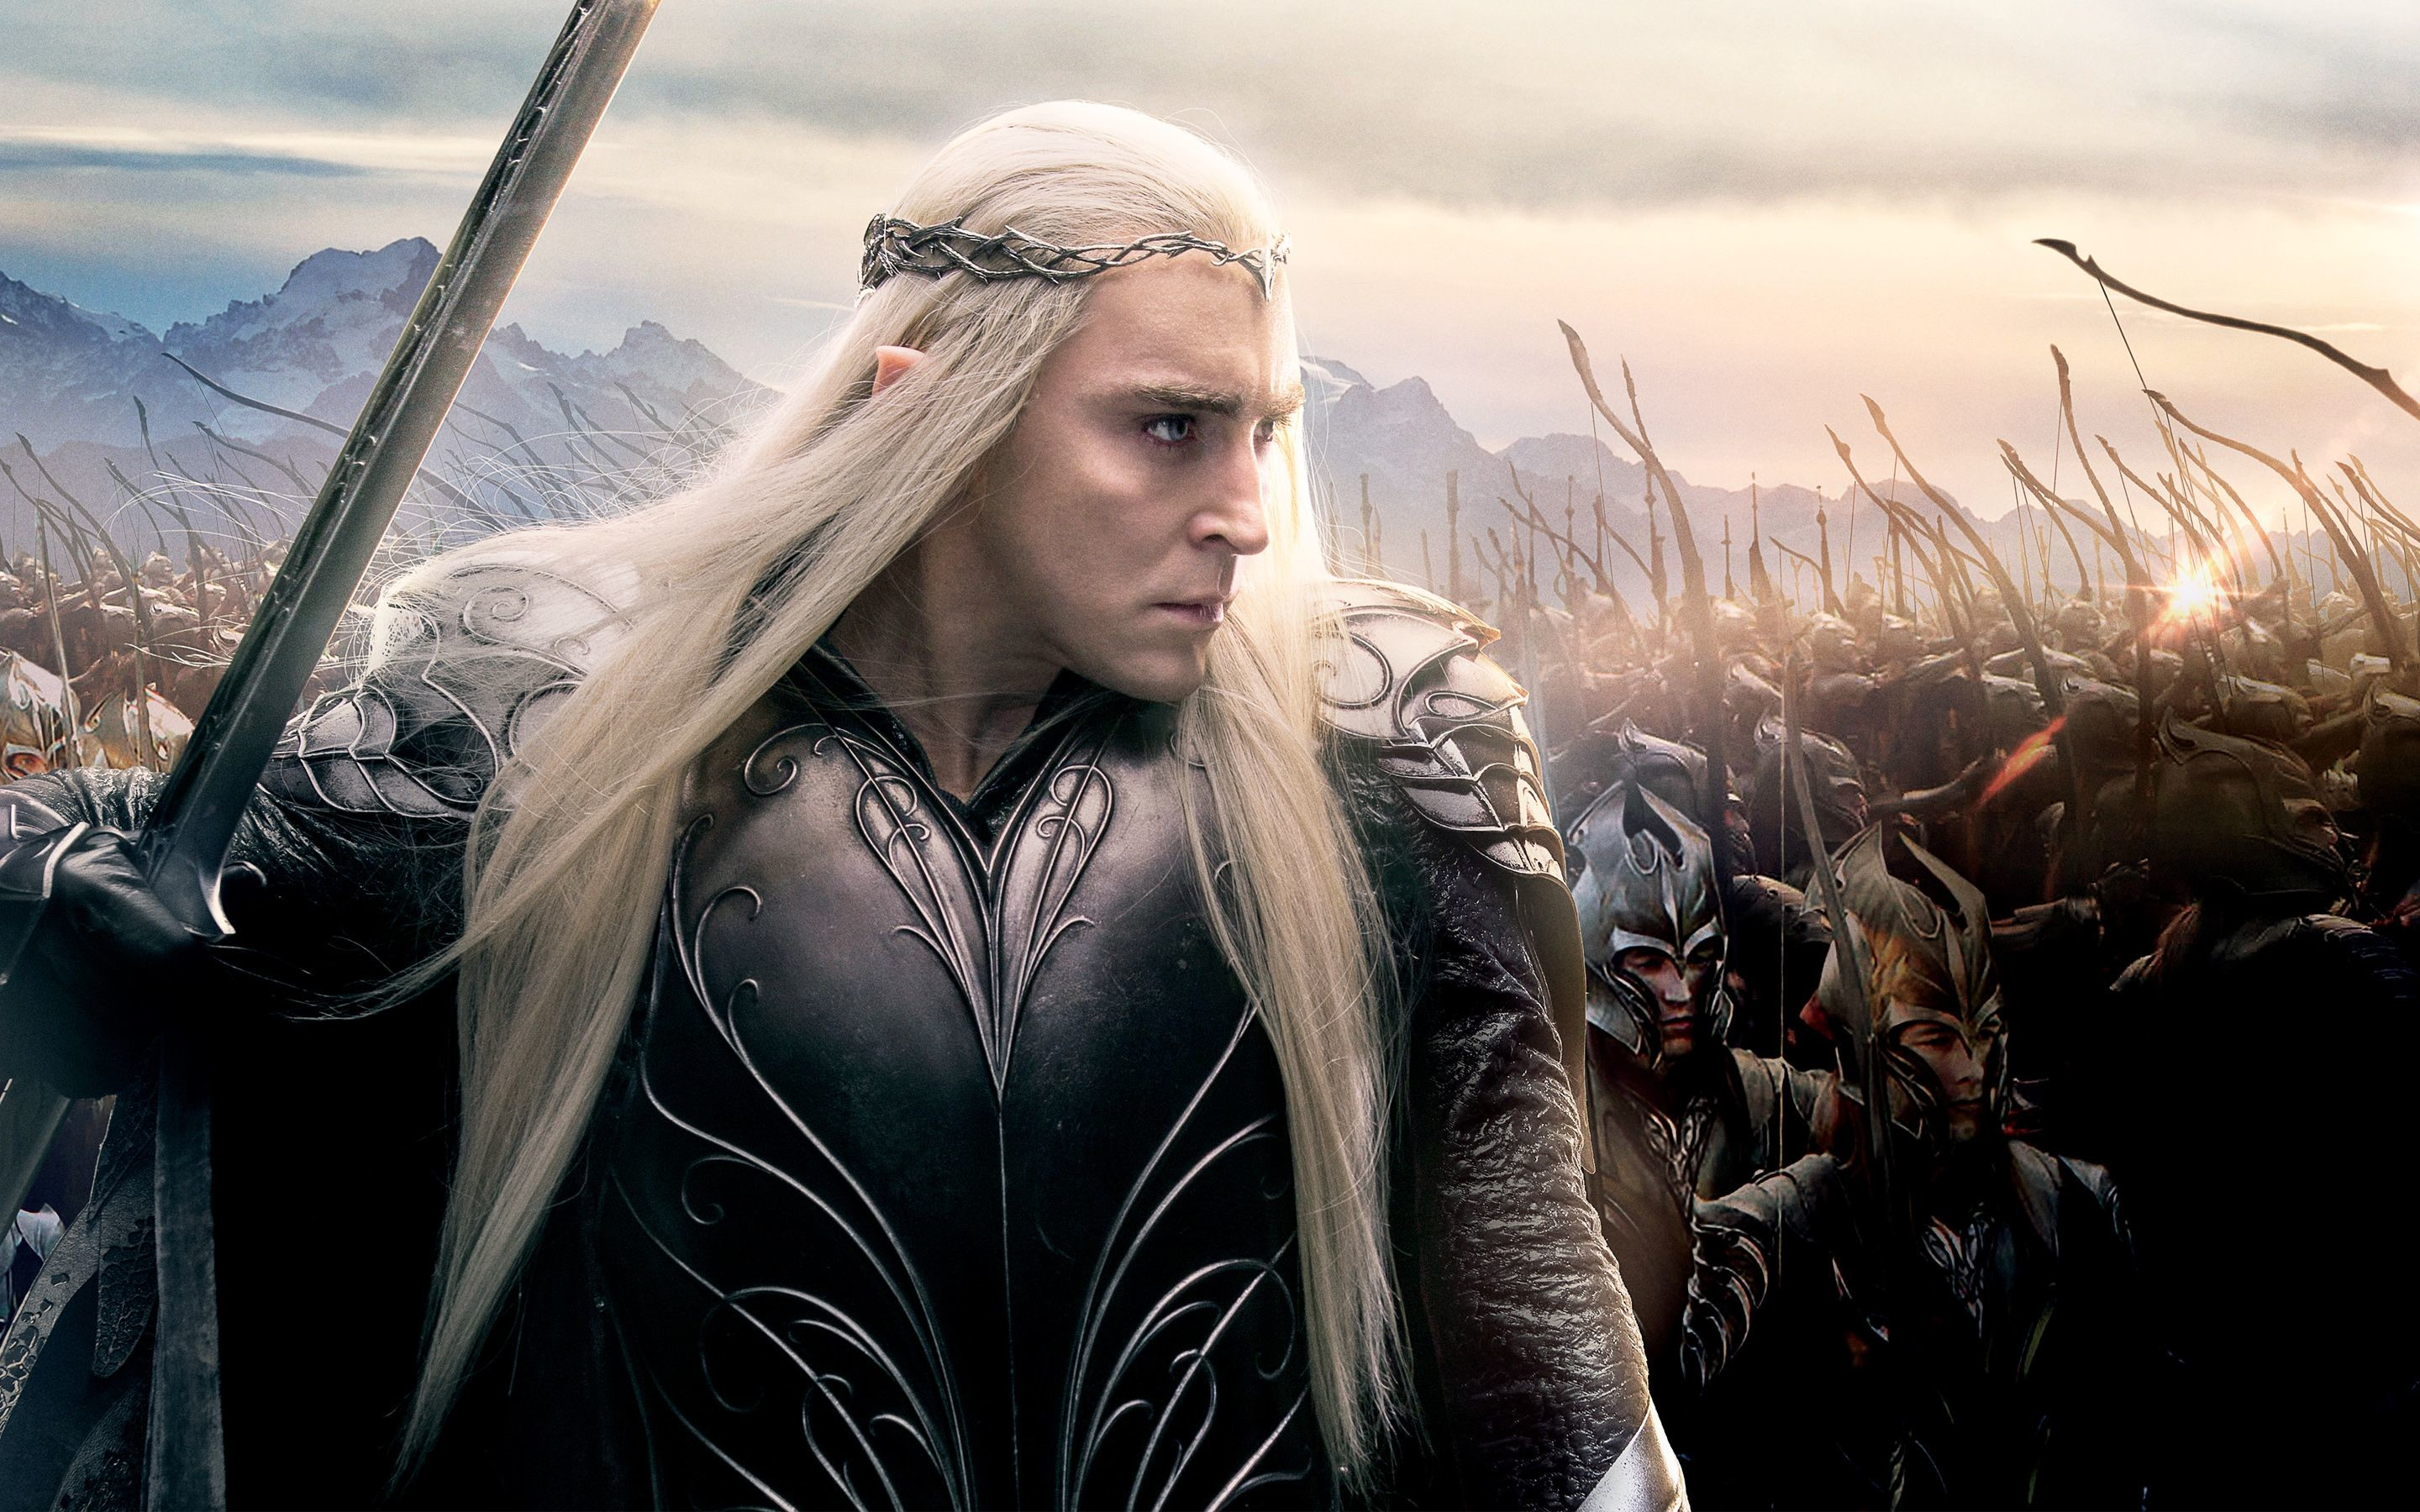 Res: 2880x1800, Lee Pace as Thranduil in Hobbit 3 Wallpapers | HD Wallpapers